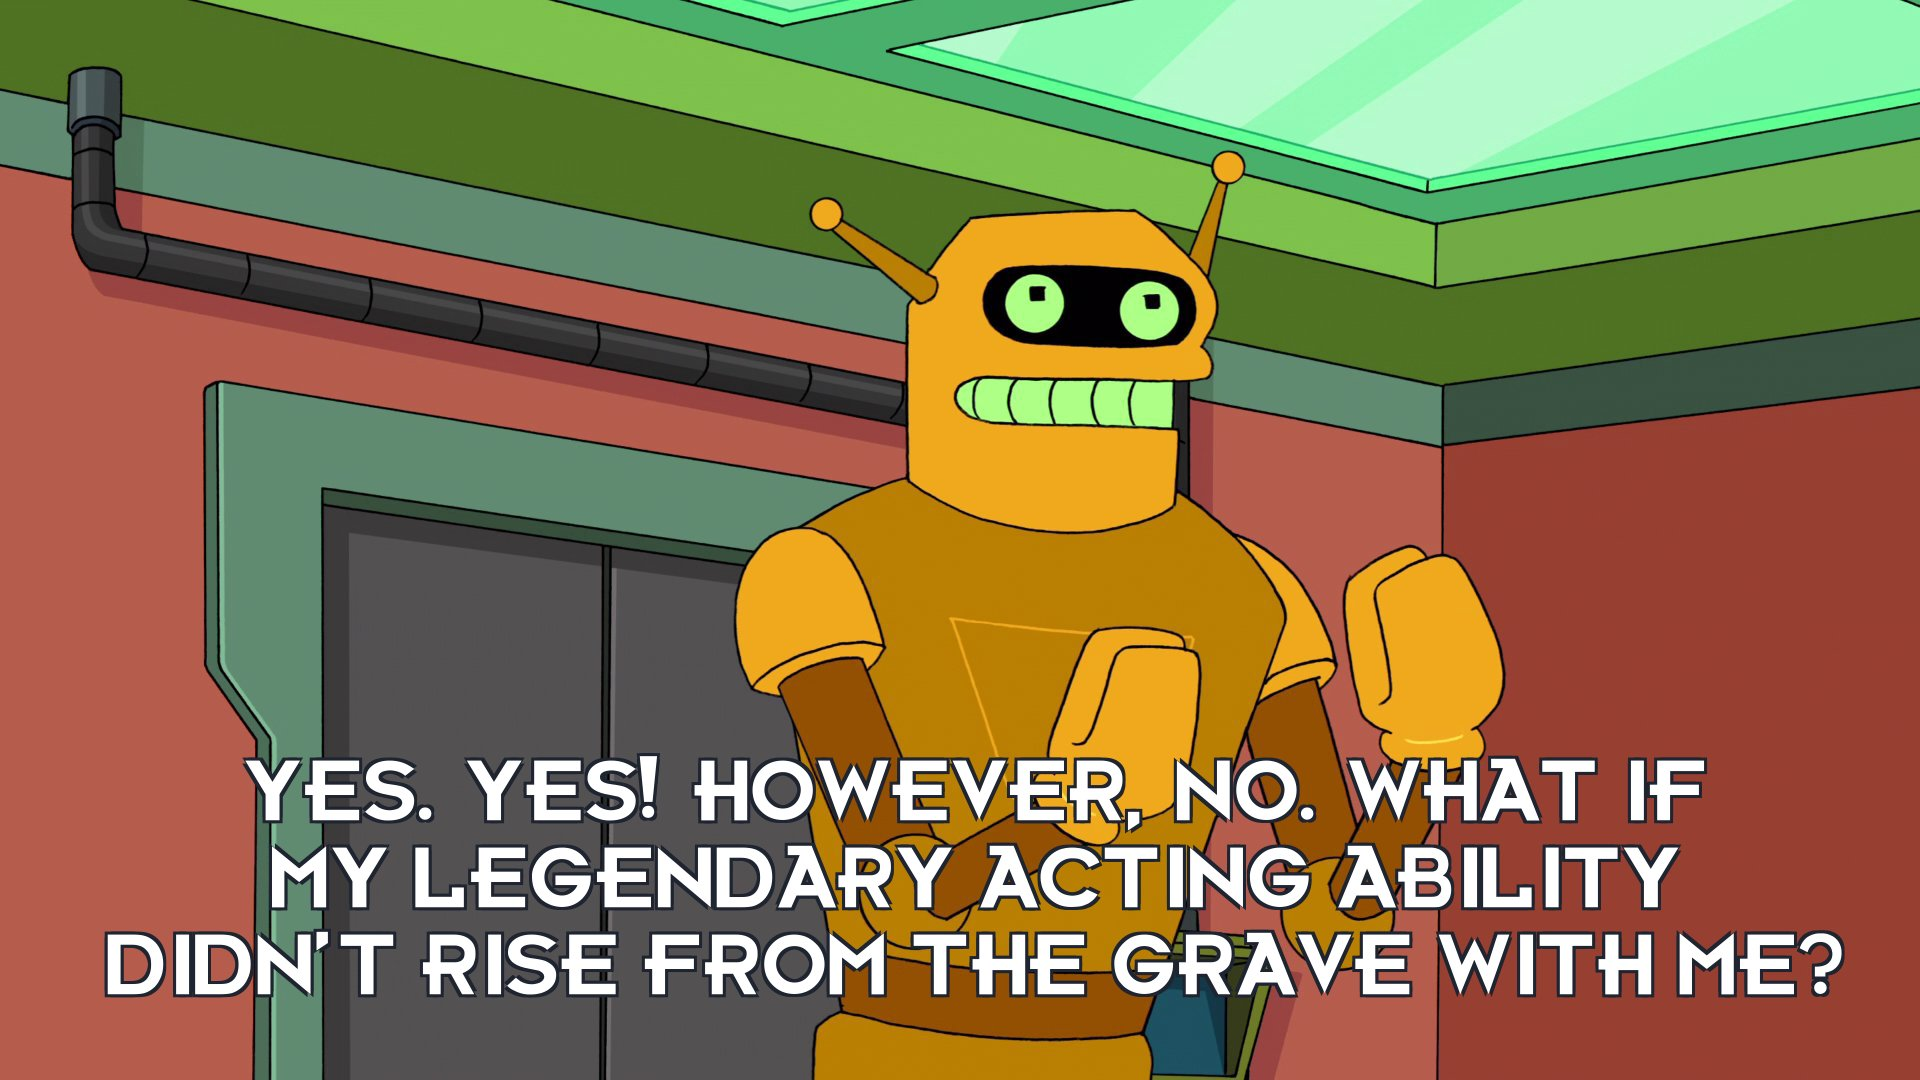 Calculon: Yes. Yes! However, no. What if my legendary acting ability didn't rise from the grave with me?